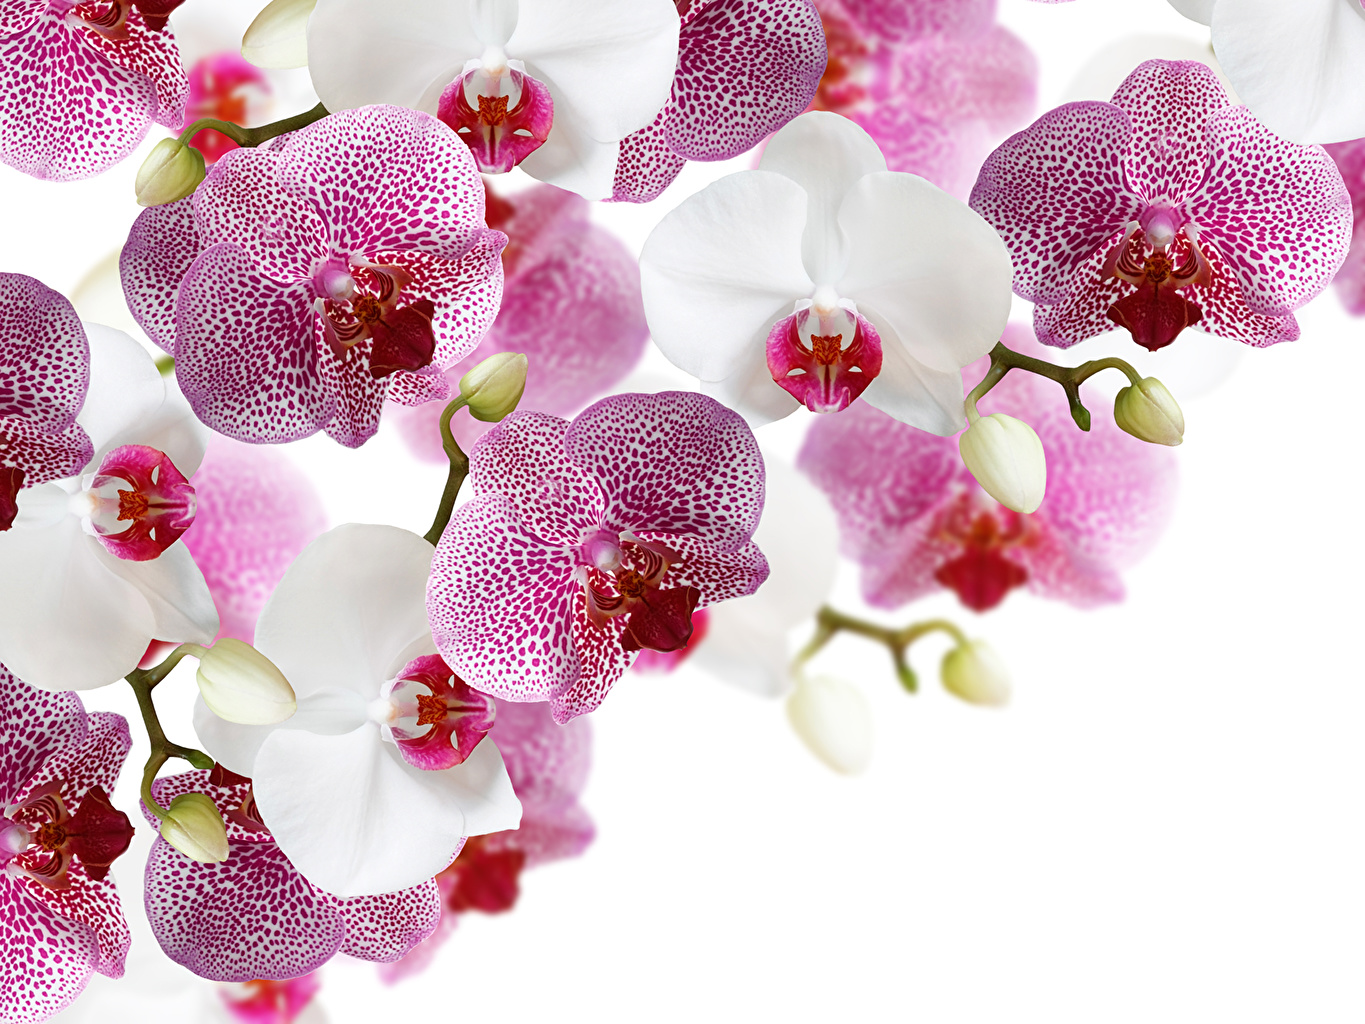 Fonds D Ecran Orchidees En Gros Plan Fond Blanc Fleurs Telecharger Photo